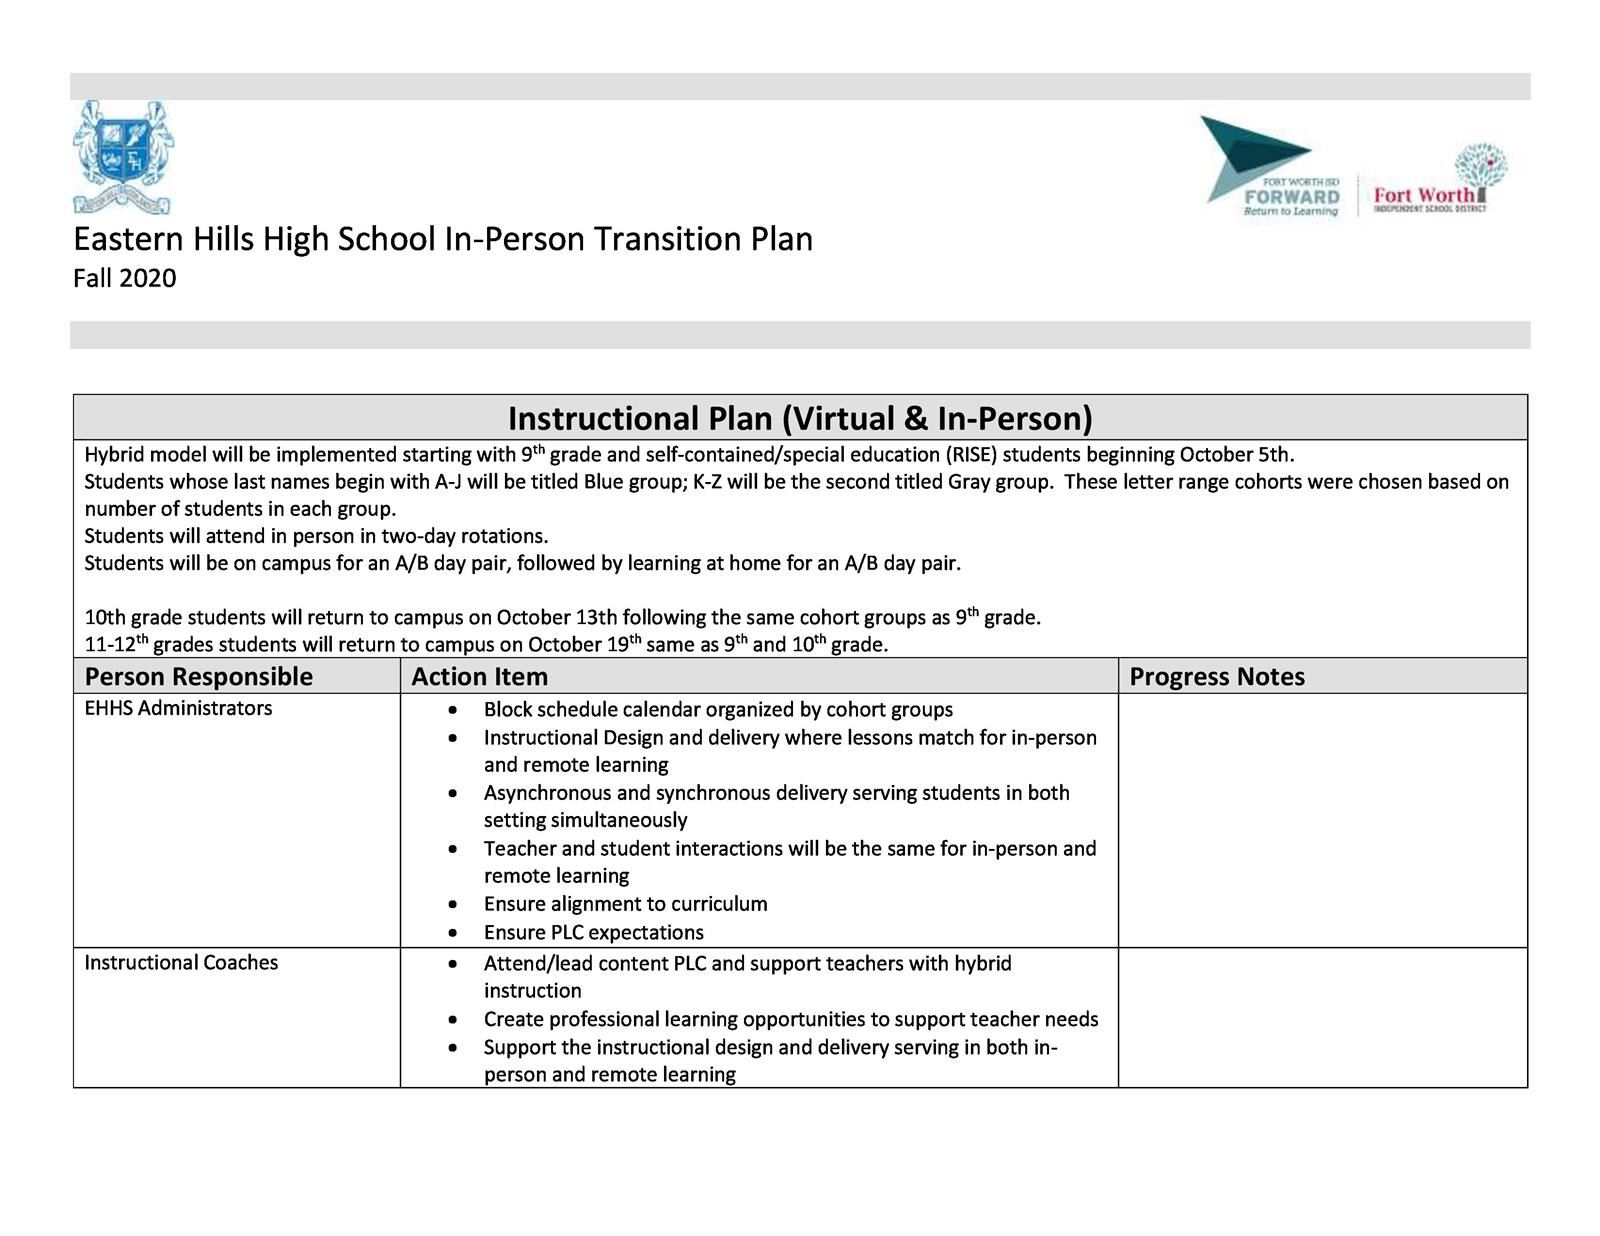 EHHS Campus in-Person Transition Plan Fall 2020